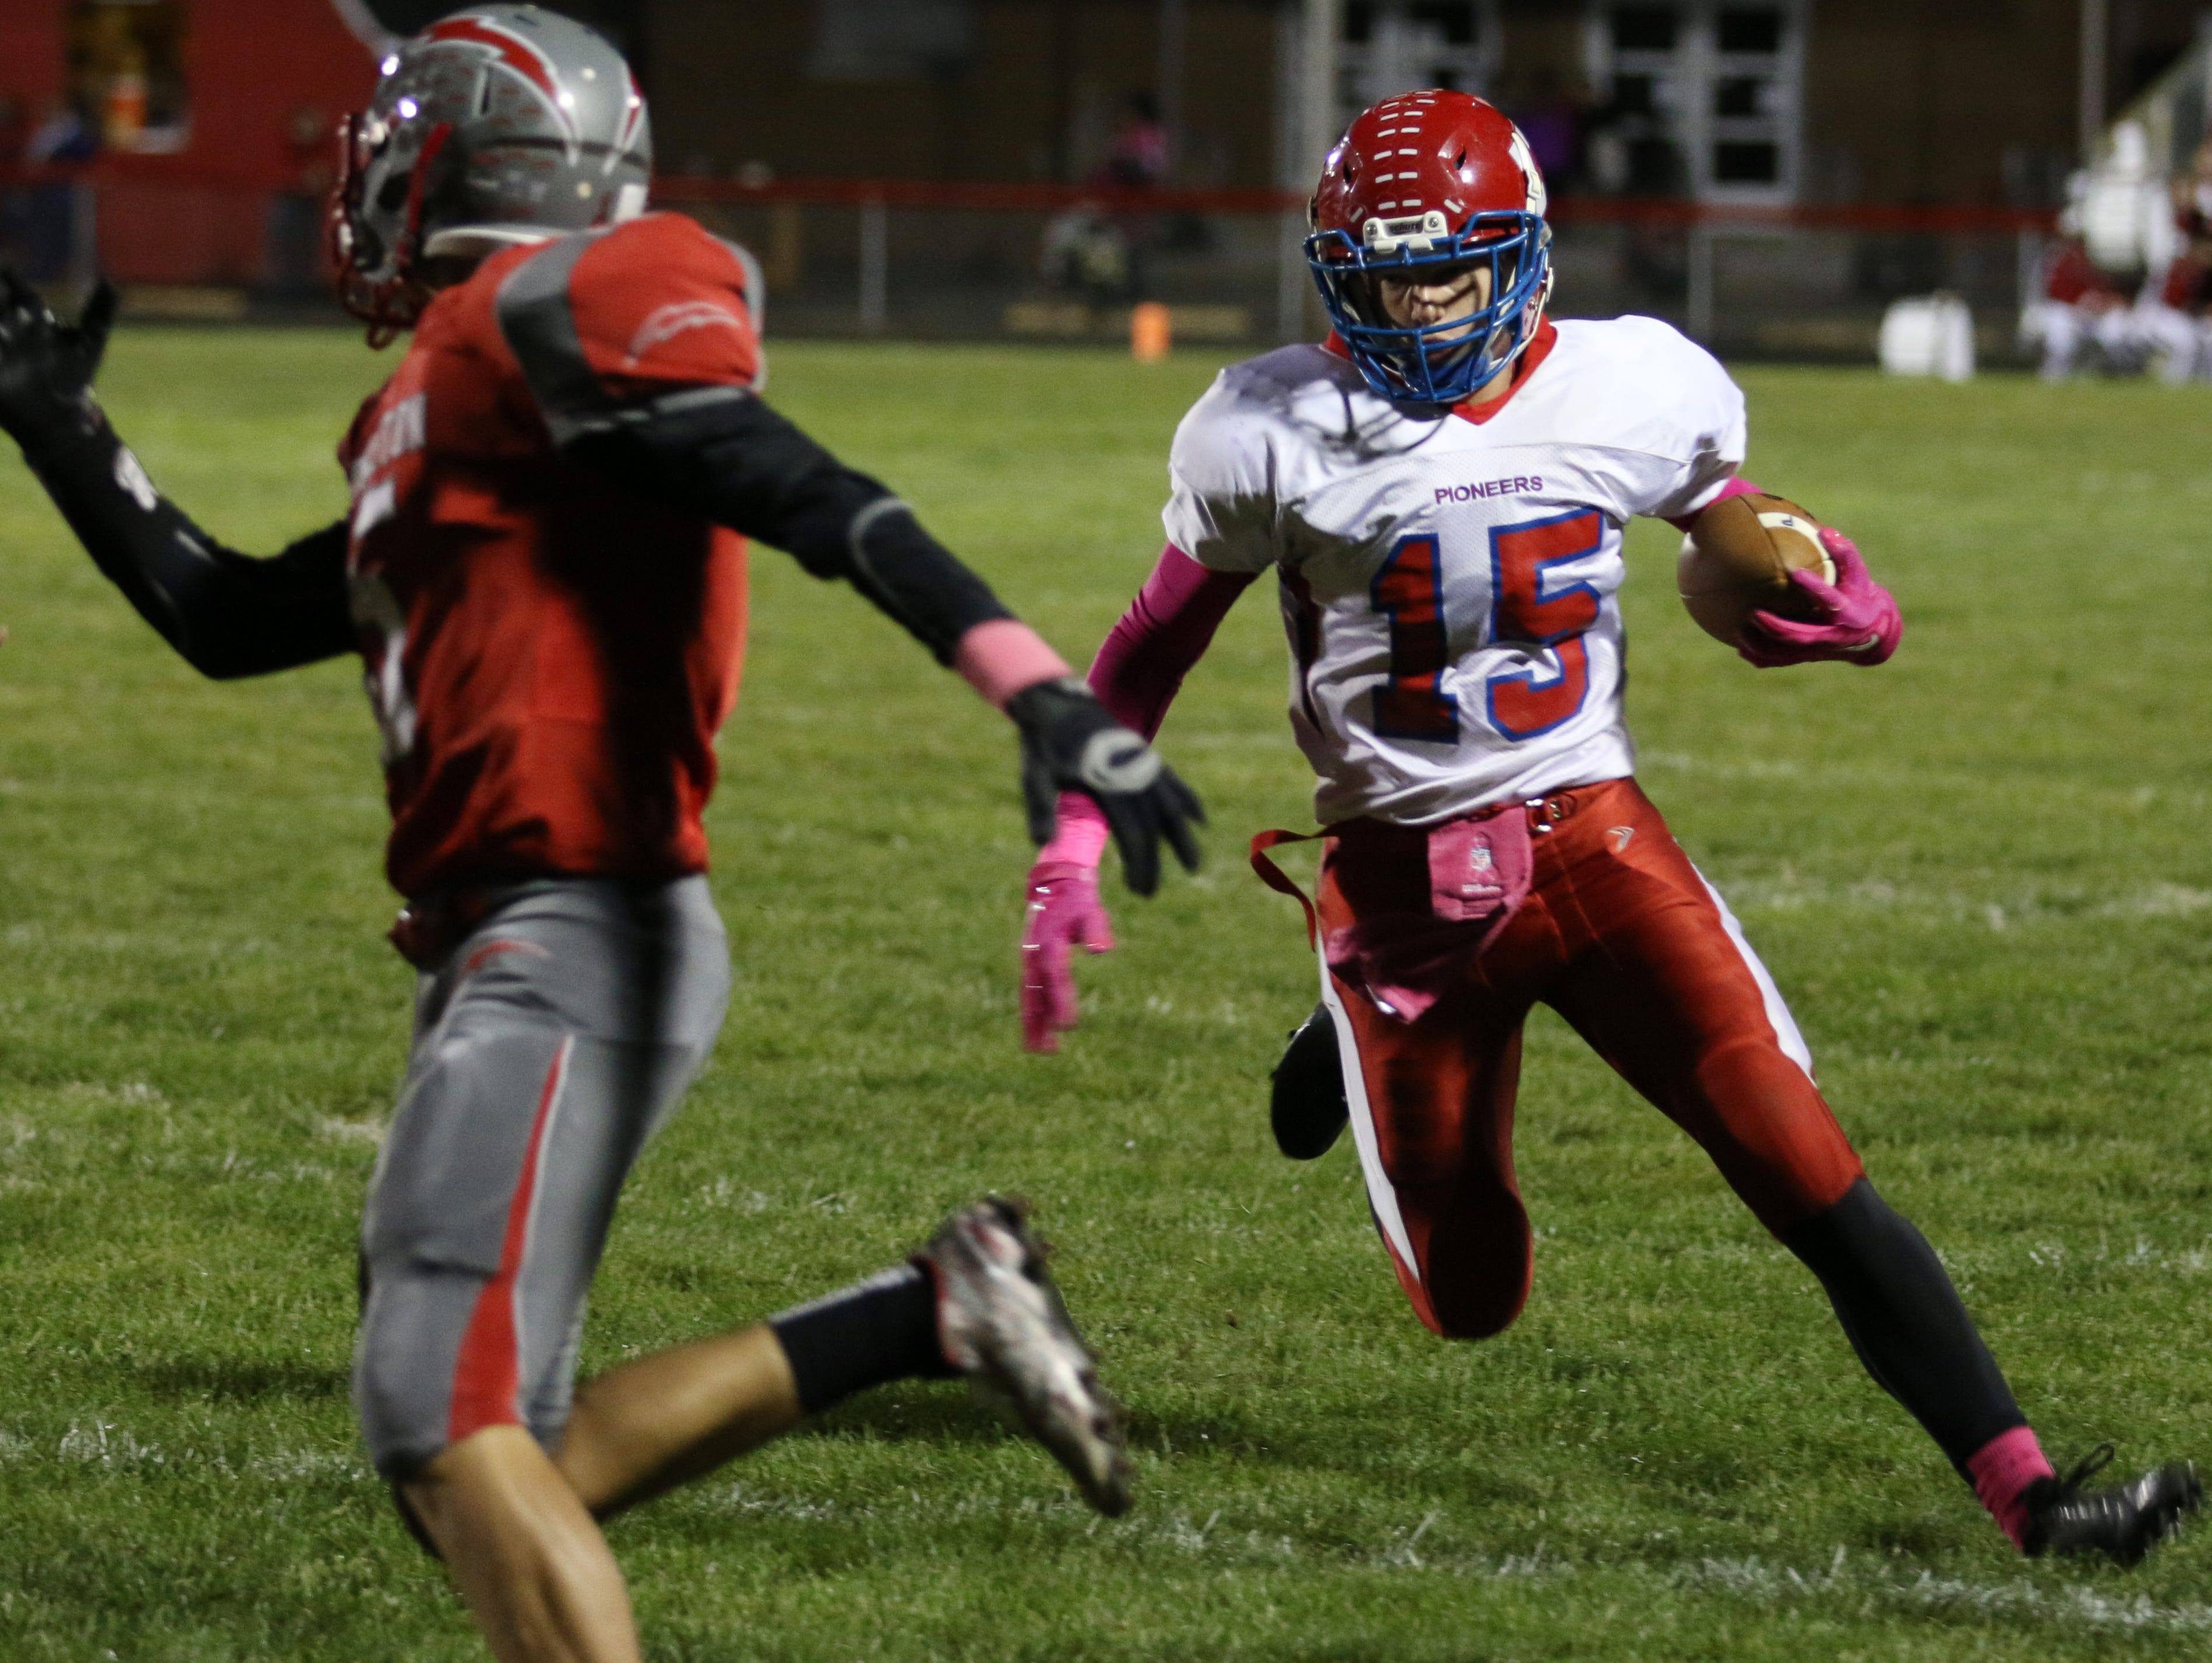 Zane Trace's Alex Wolff carries the ball during Friday's contest against Piketon at Piketon High School. The Pioneers won the game, 42-8.